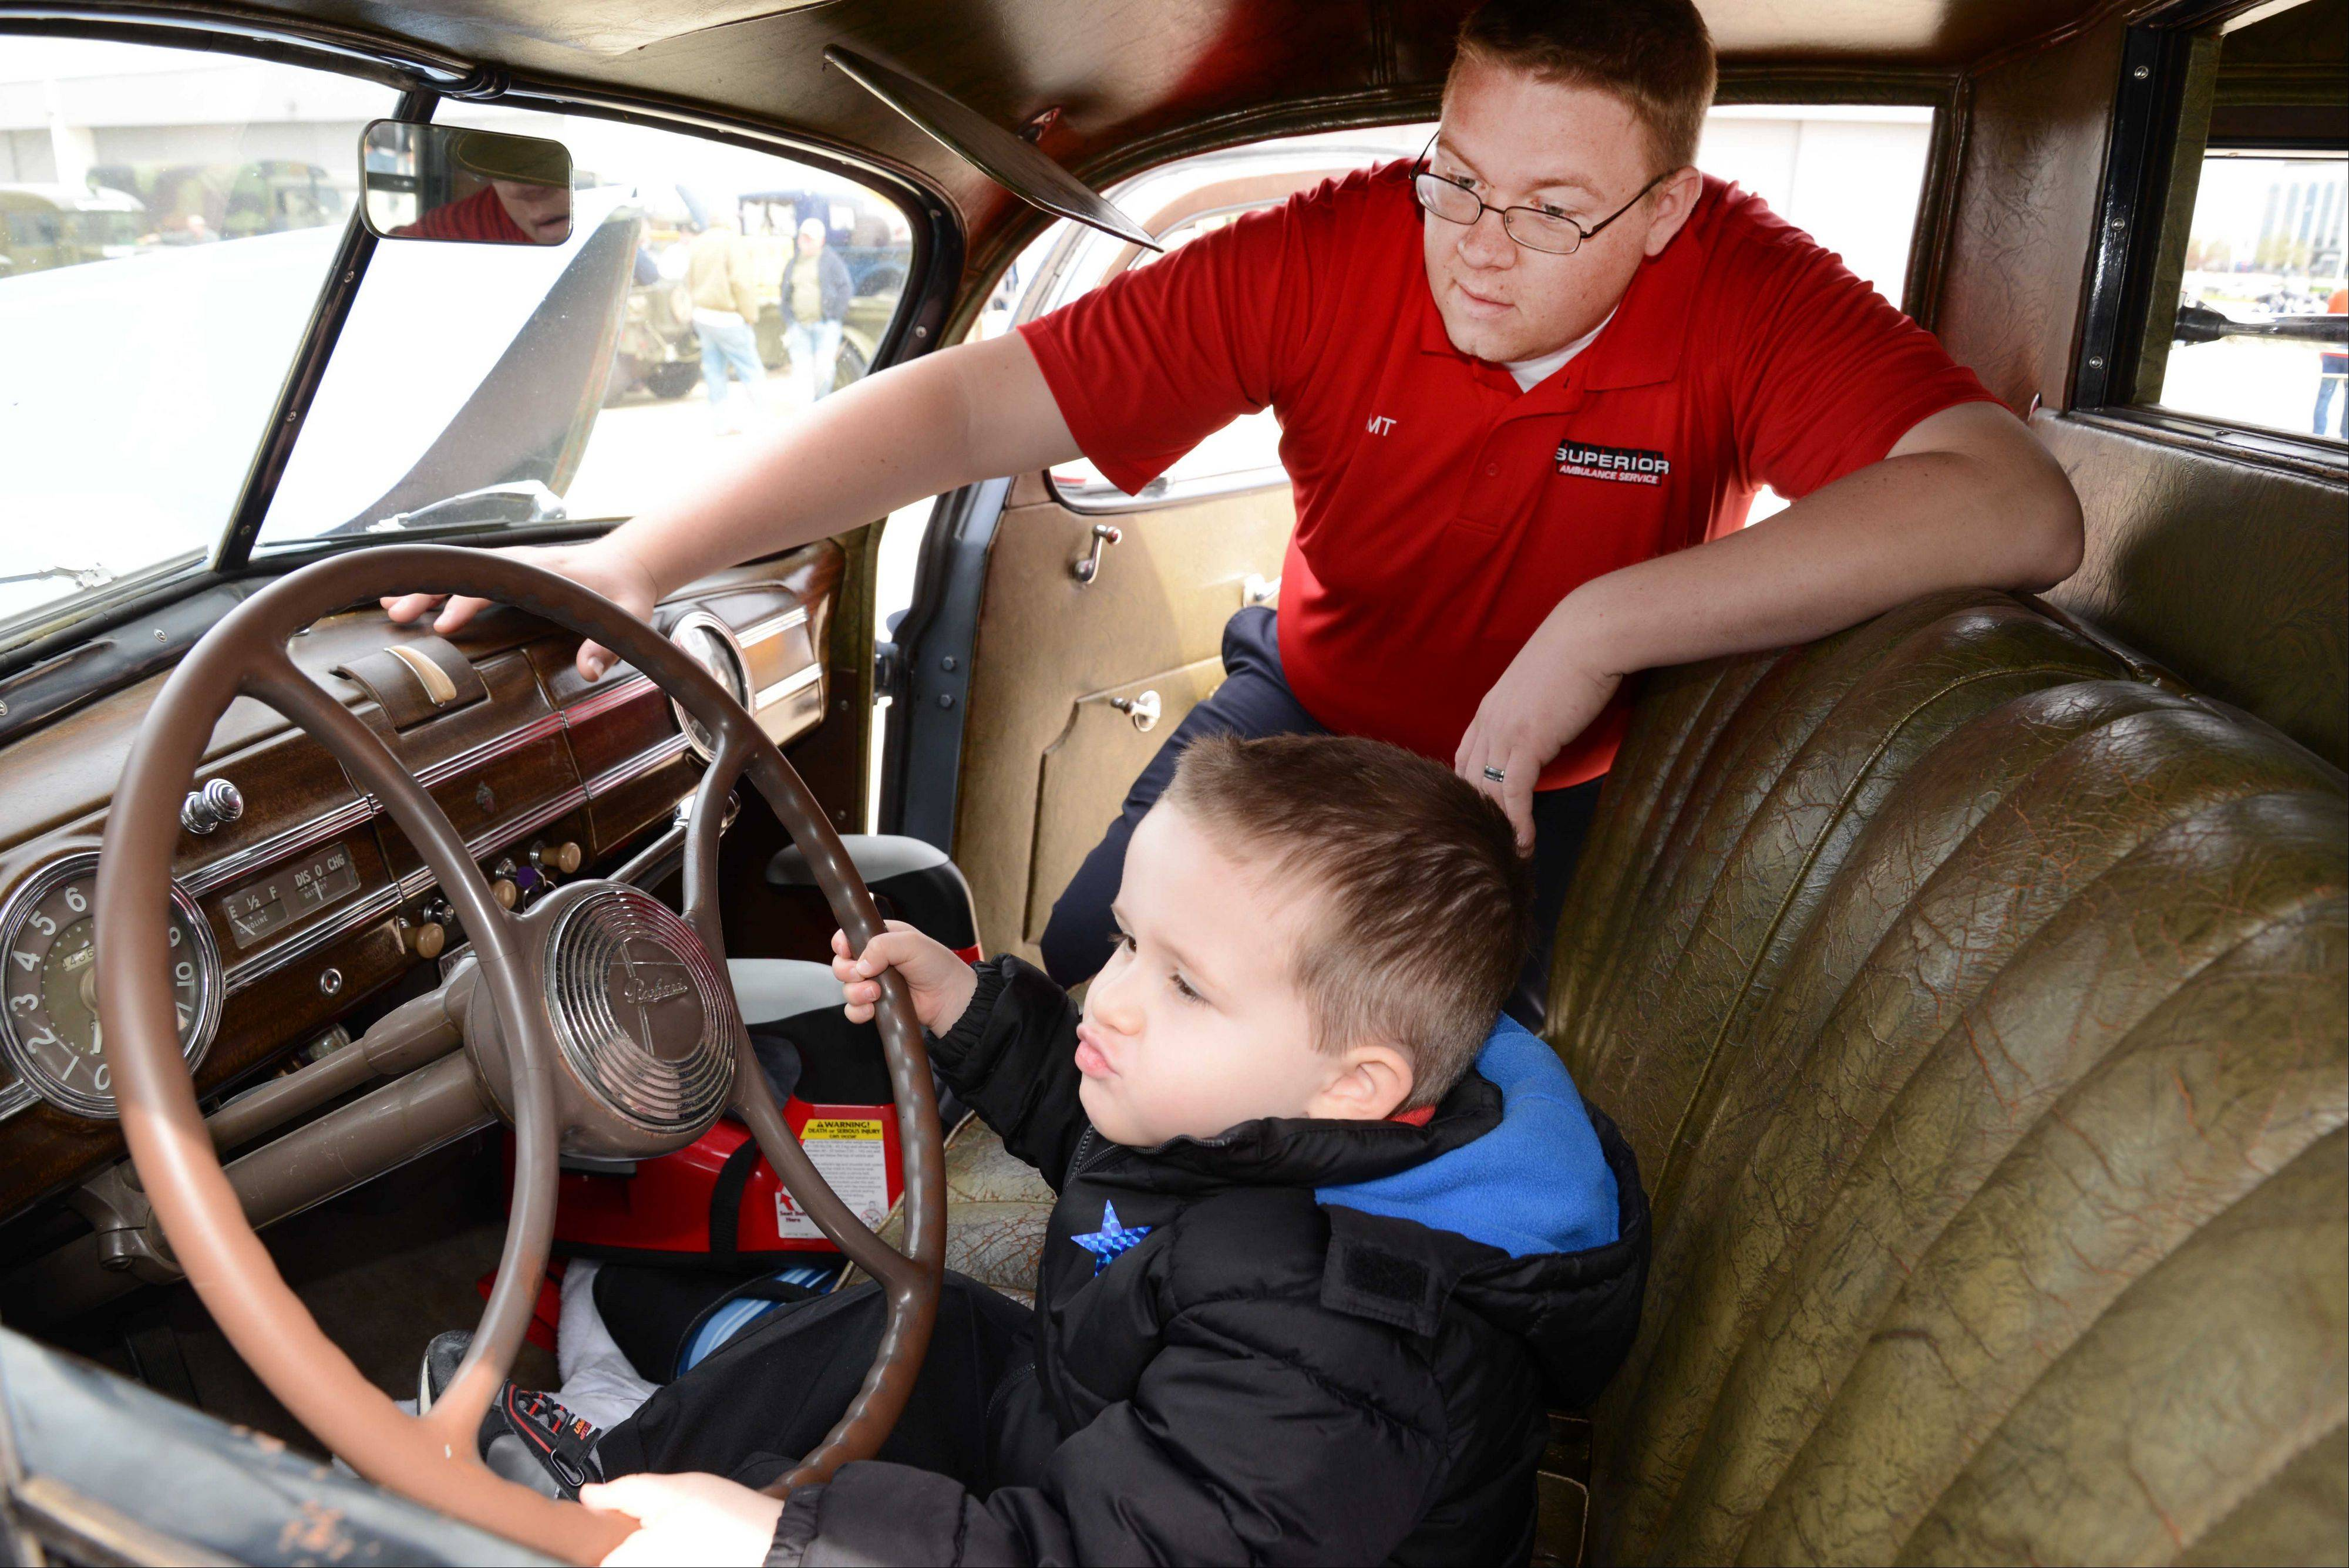 Robert Wangles and his stepson Jacob Valade, 3, of Crystal Lake, sit in a 1940 Packard Ambulance used during wartime during a fundraiser for Honor Flight Chicago Saturday at DuPage Airport. The event, hosted by the DuPage Veterans Foundation, included lunch with veterans.